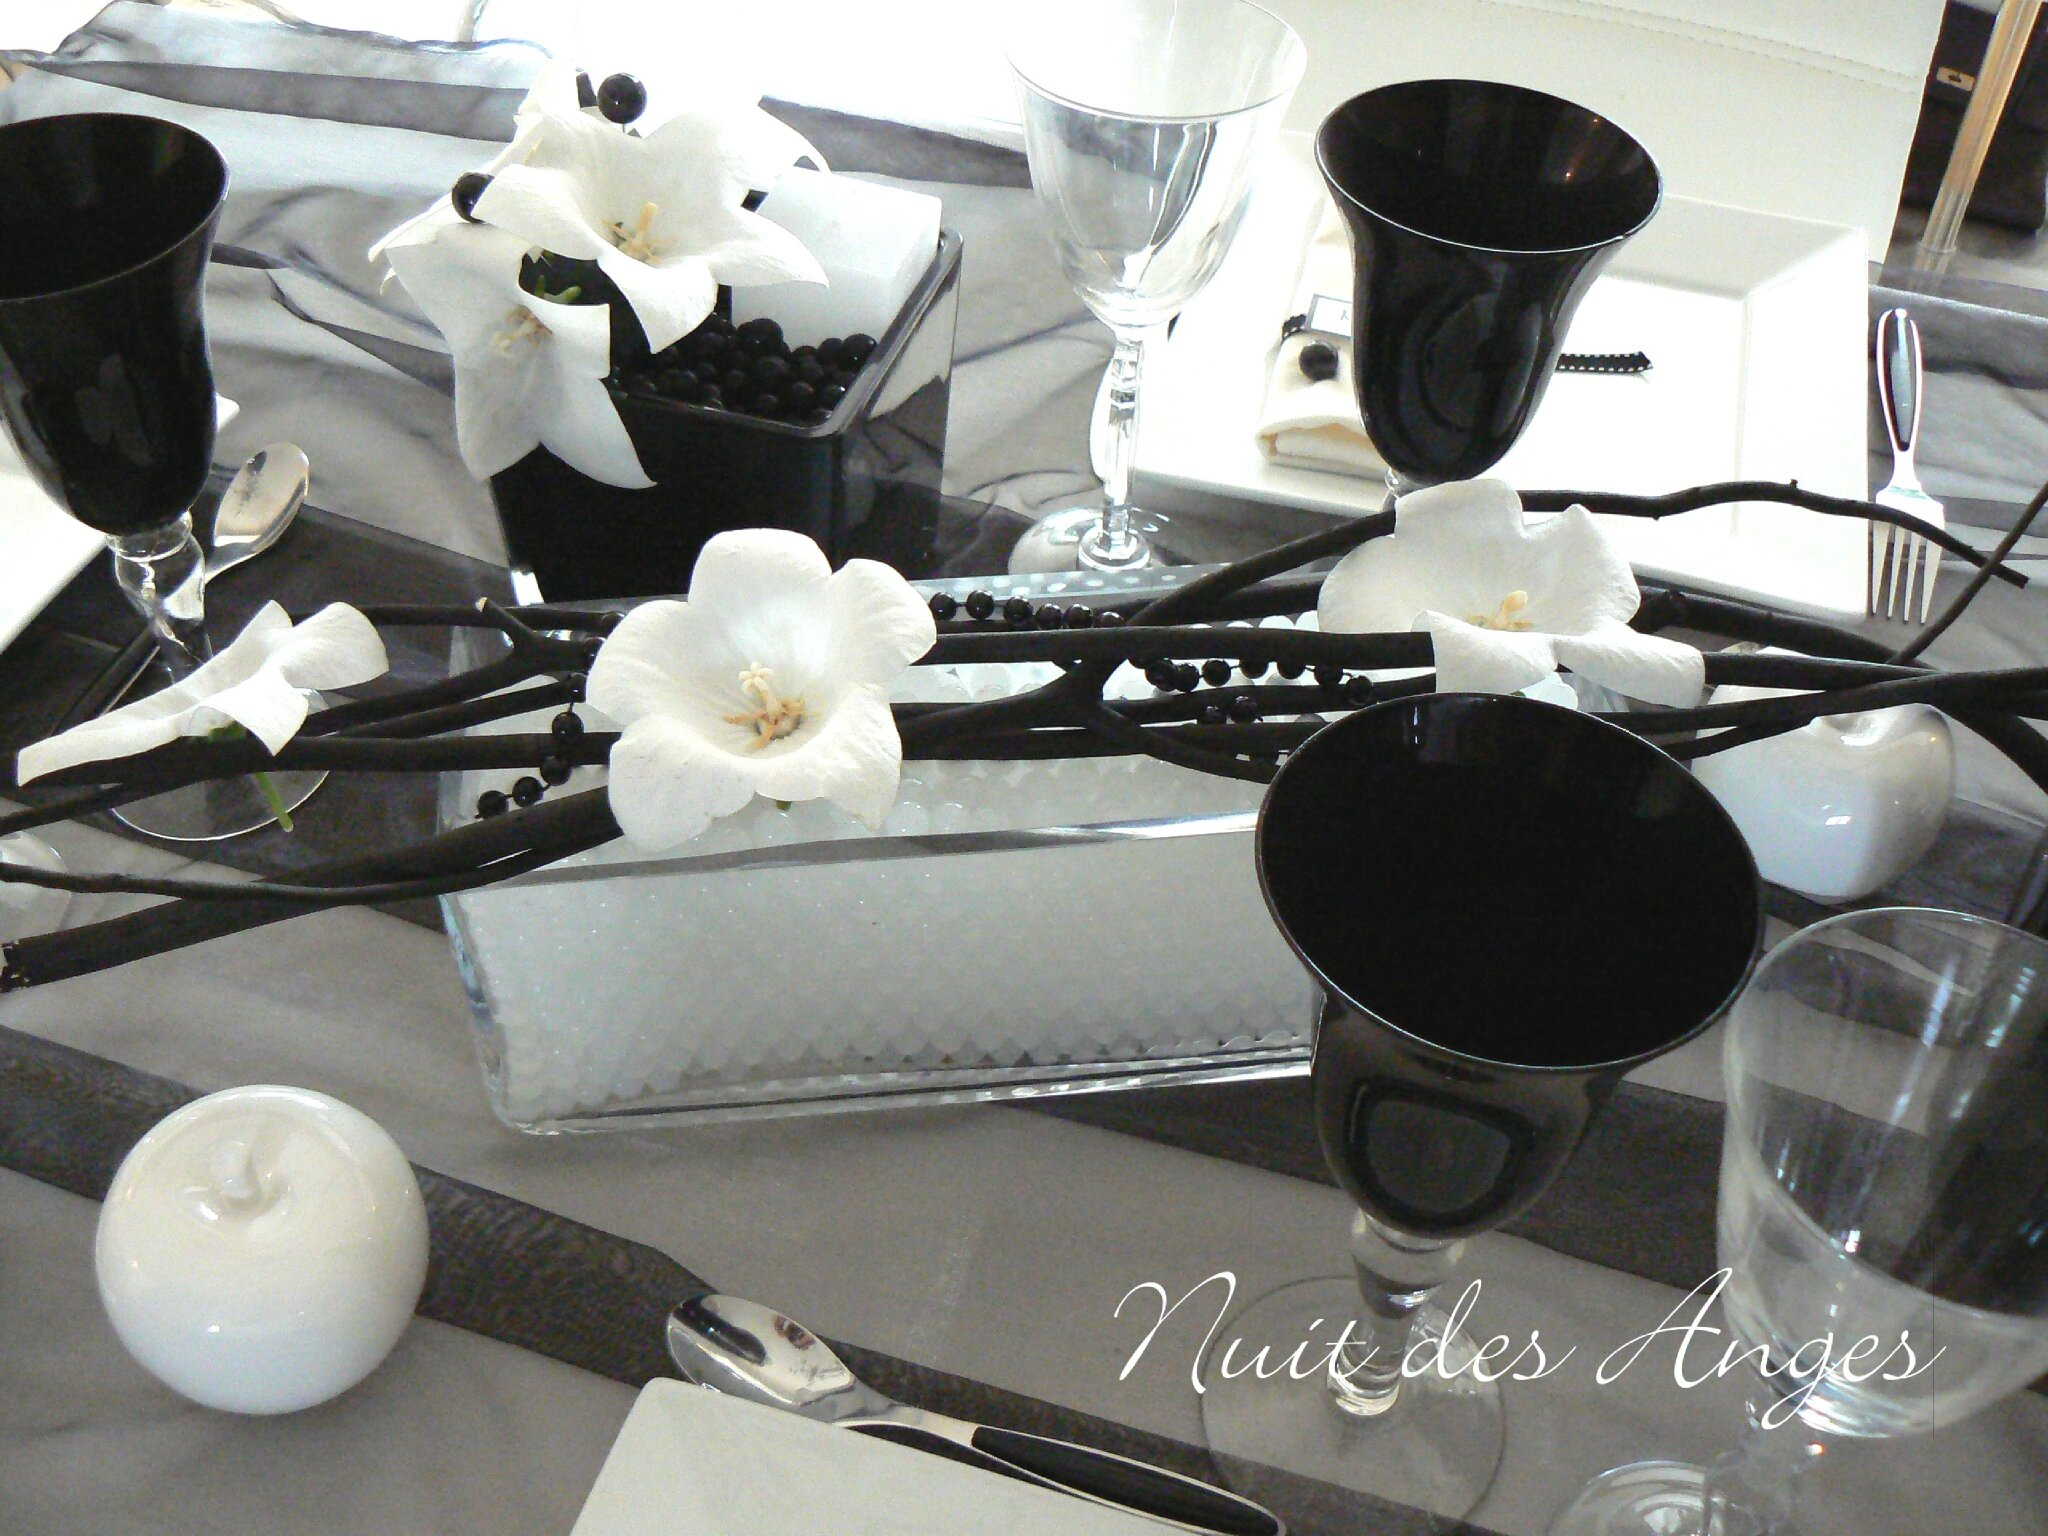 nuit des anges d coratrice de mariage d coration de table noir et blanc 009 photo de. Black Bedroom Furniture Sets. Home Design Ideas